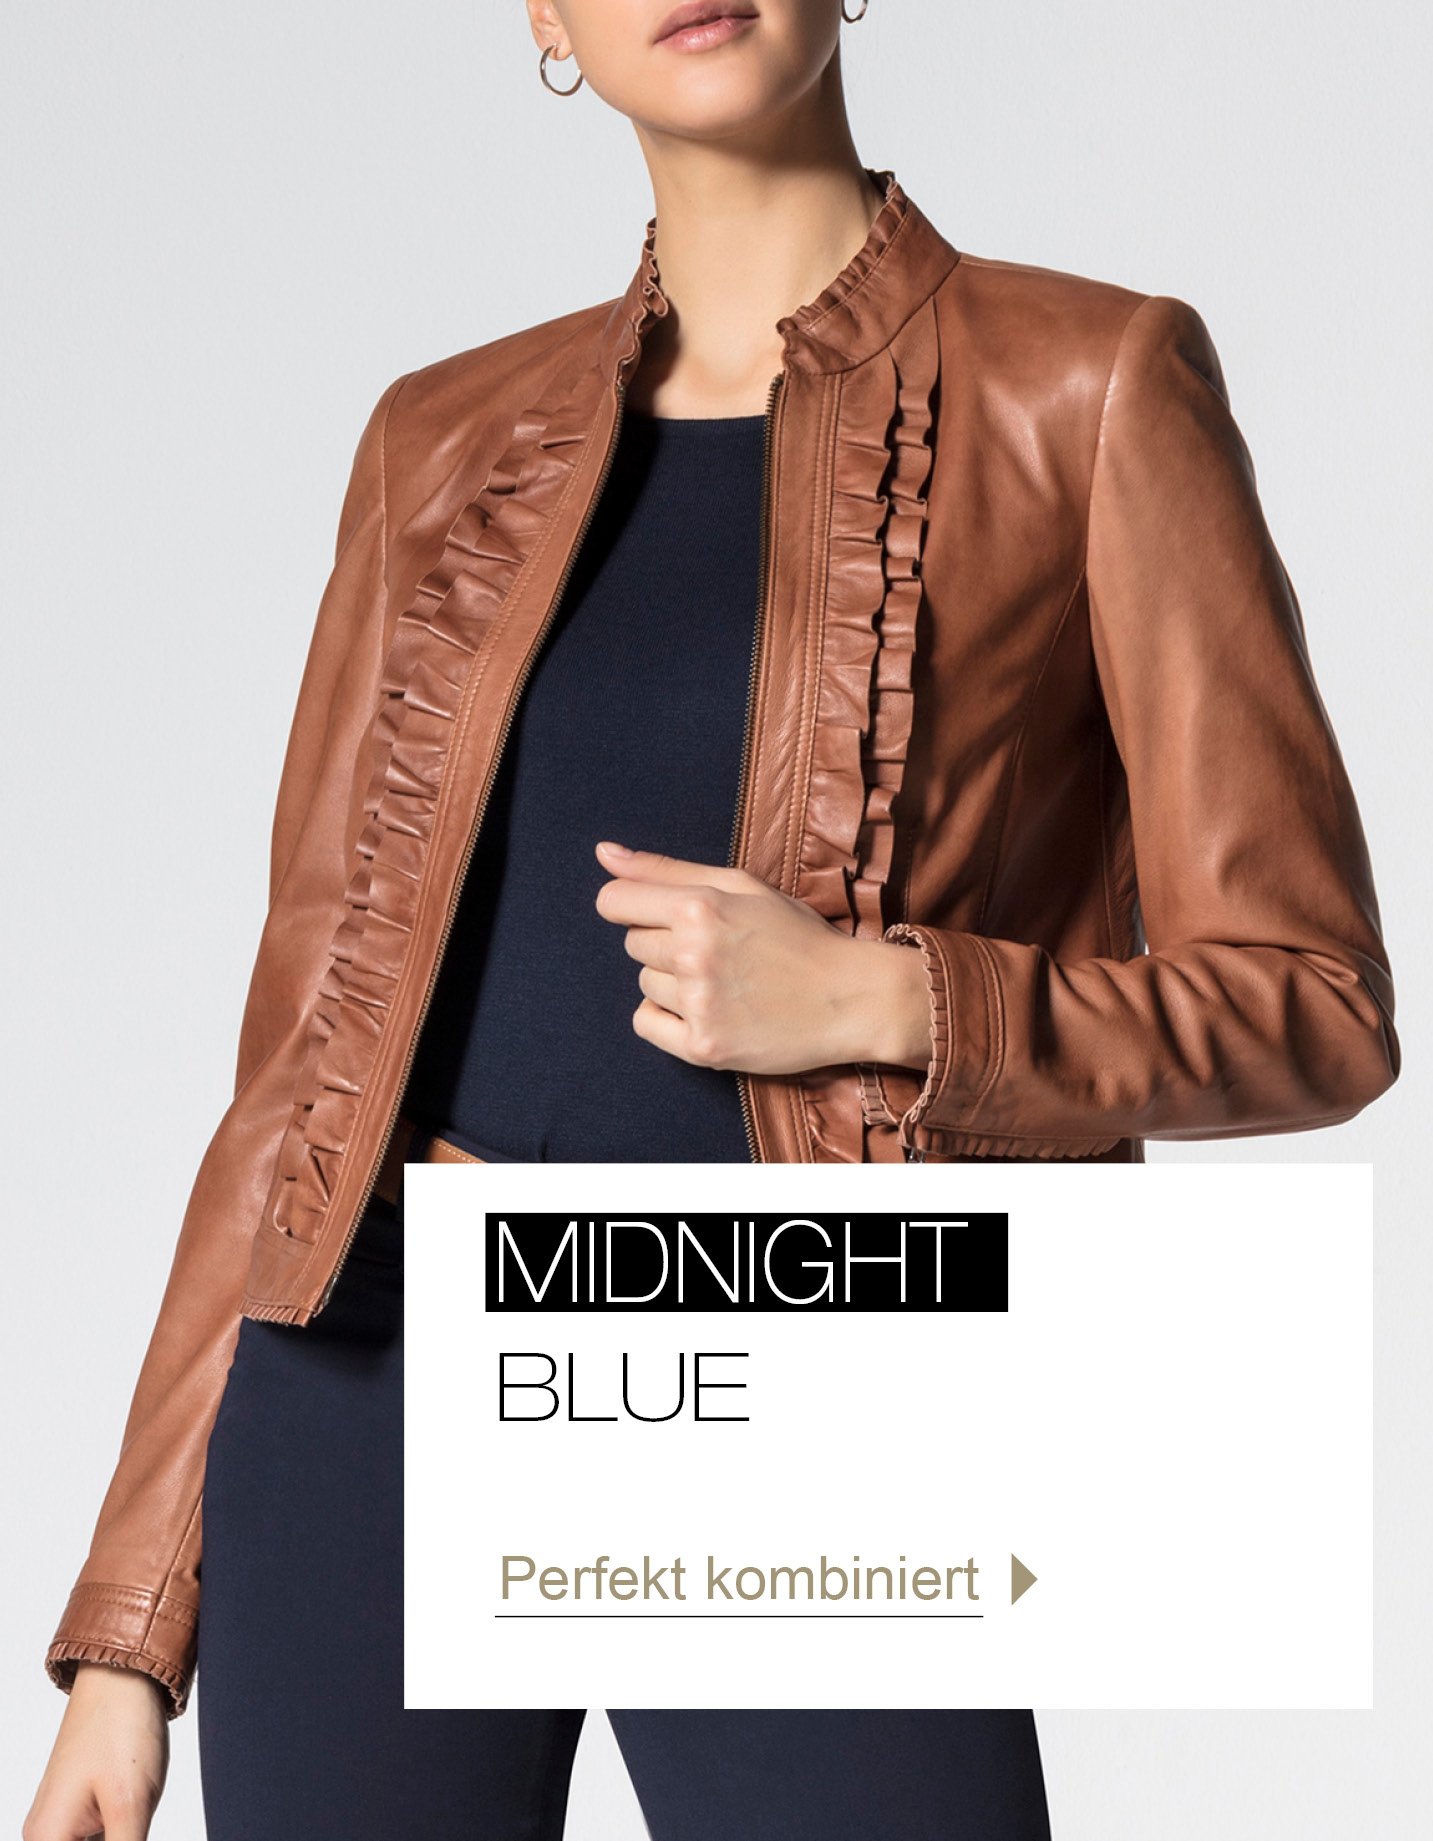 Midnight Blue - perfekt kombiniert